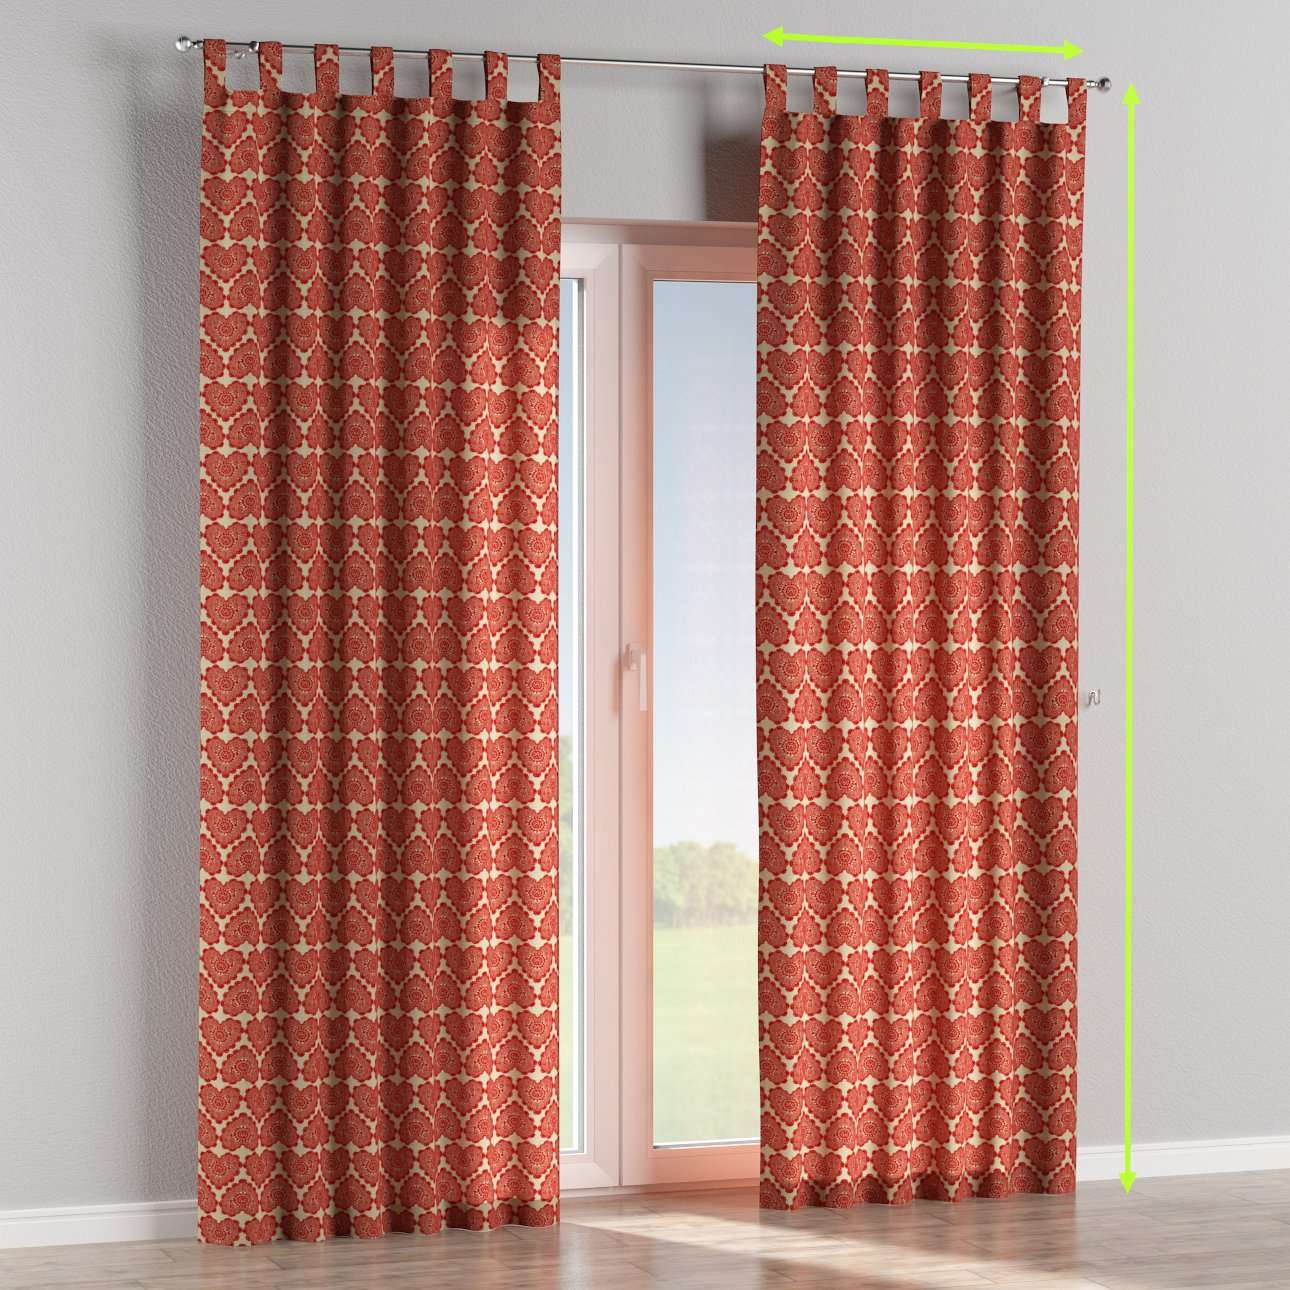 Tab top curtains in collection Freestyle, fabric: 629-17